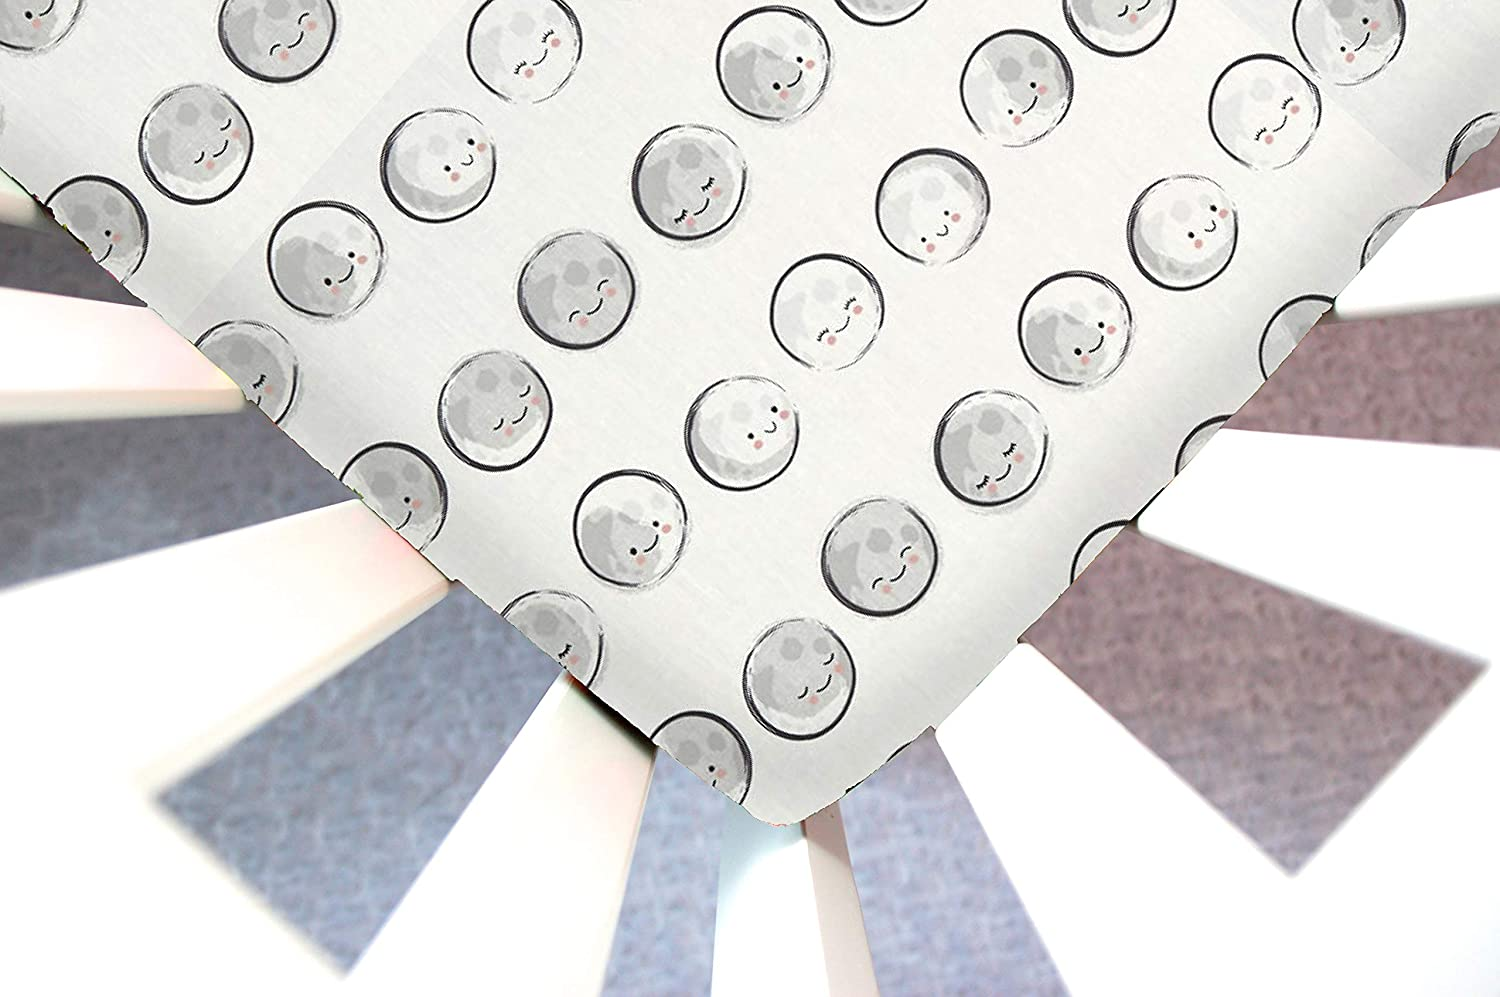 Little Moose by Liza Handmade Sheet Made to Fit The 4Moms Play Yard Model 1028 (Old) inHappy Moons (Moon Phases Gray) This Sheet was Not Created or Sold by ...